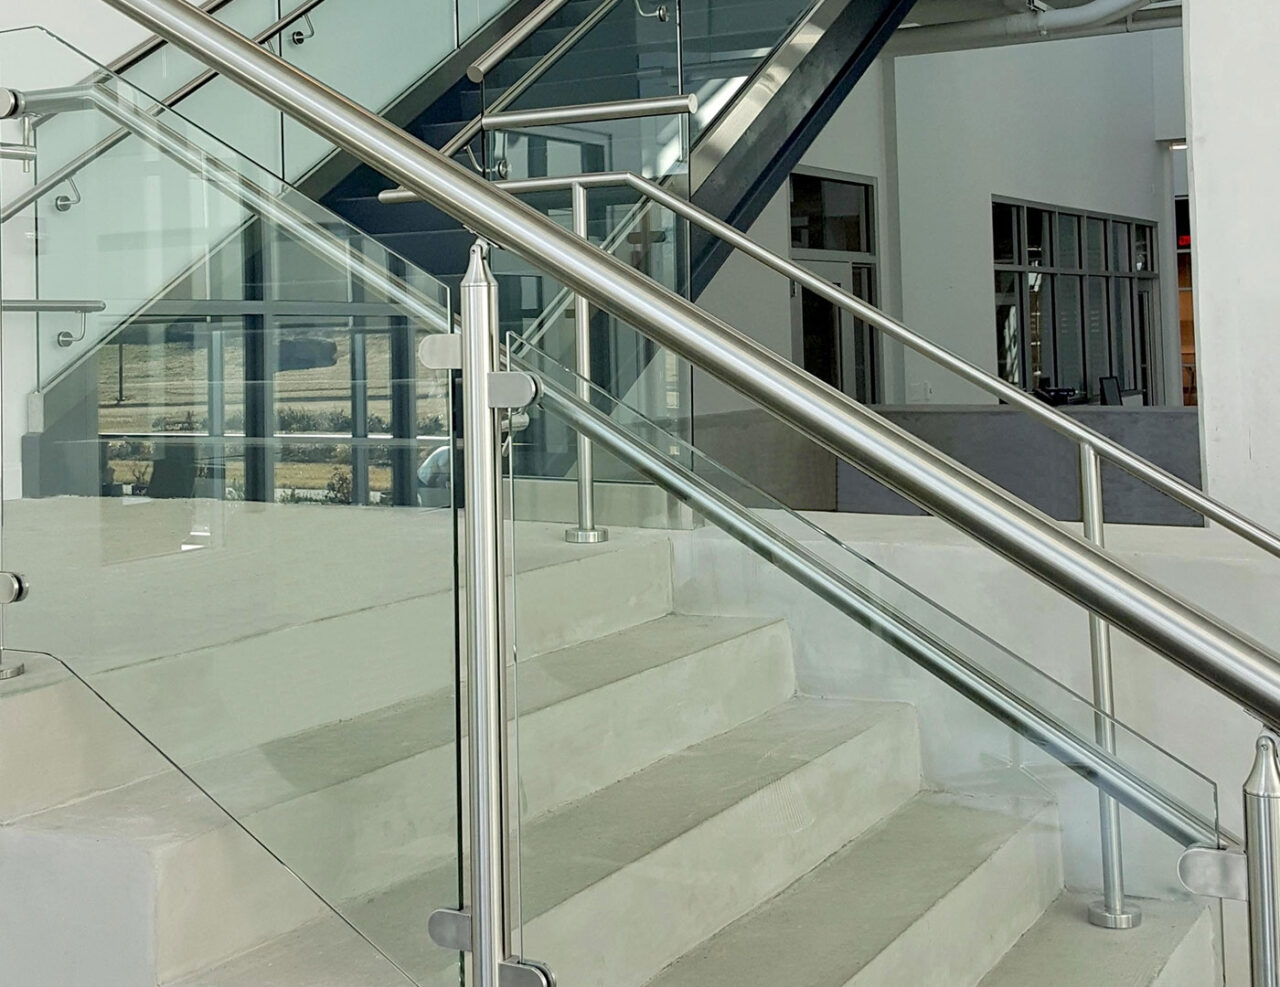 Monaco Post Supported Glass Railing Trex Commercial Products   Staircase Steel Railing Designs With Glass   Banister   Duplex   Button Glass   Exterior Perforated Metal   Glass Balustrade Wood Post